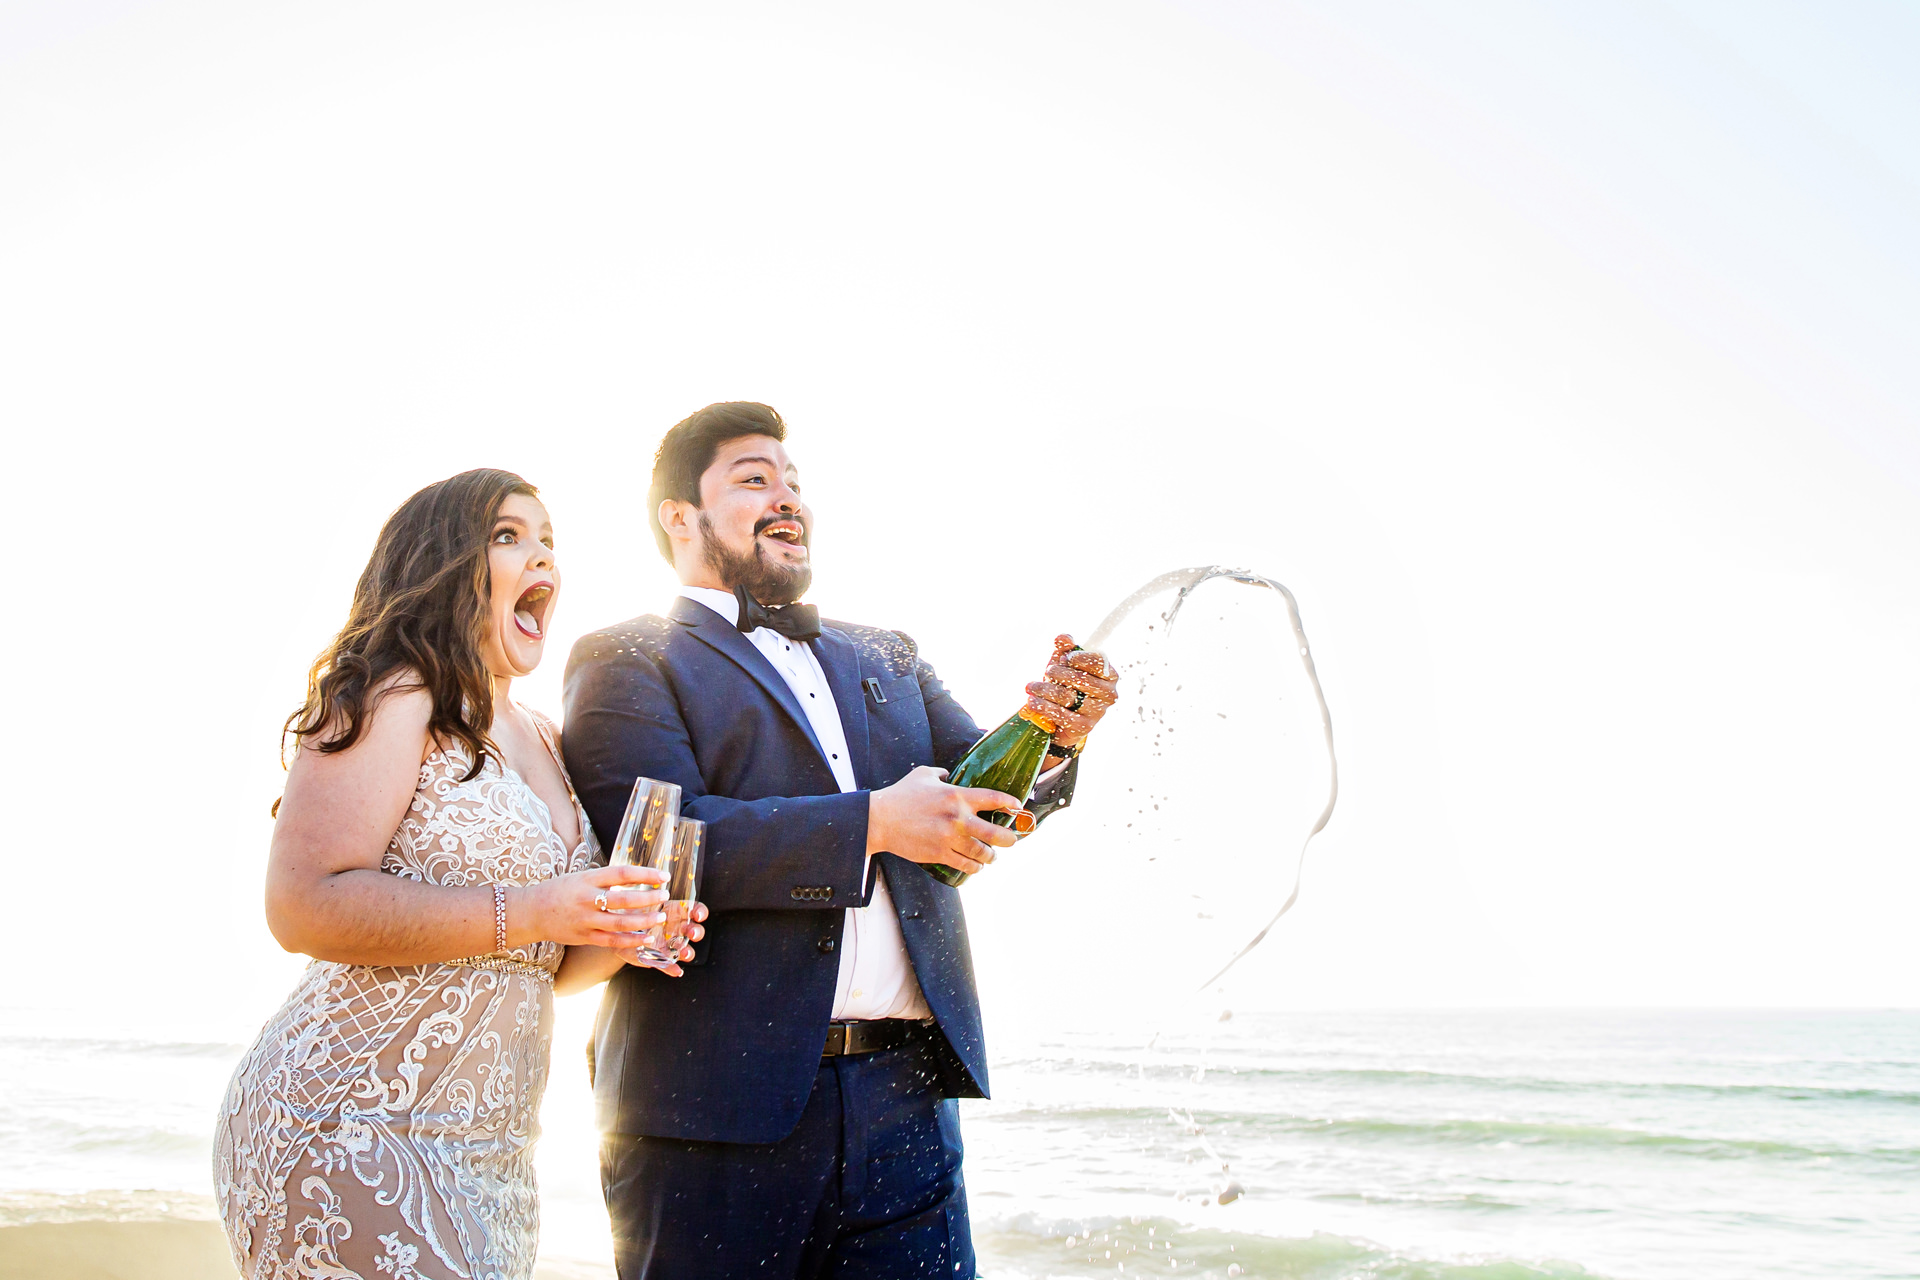 Sunset Cliffs Intimate Wedding Photographer of CA | The groom pops a bottle of champagne to toast his new bride